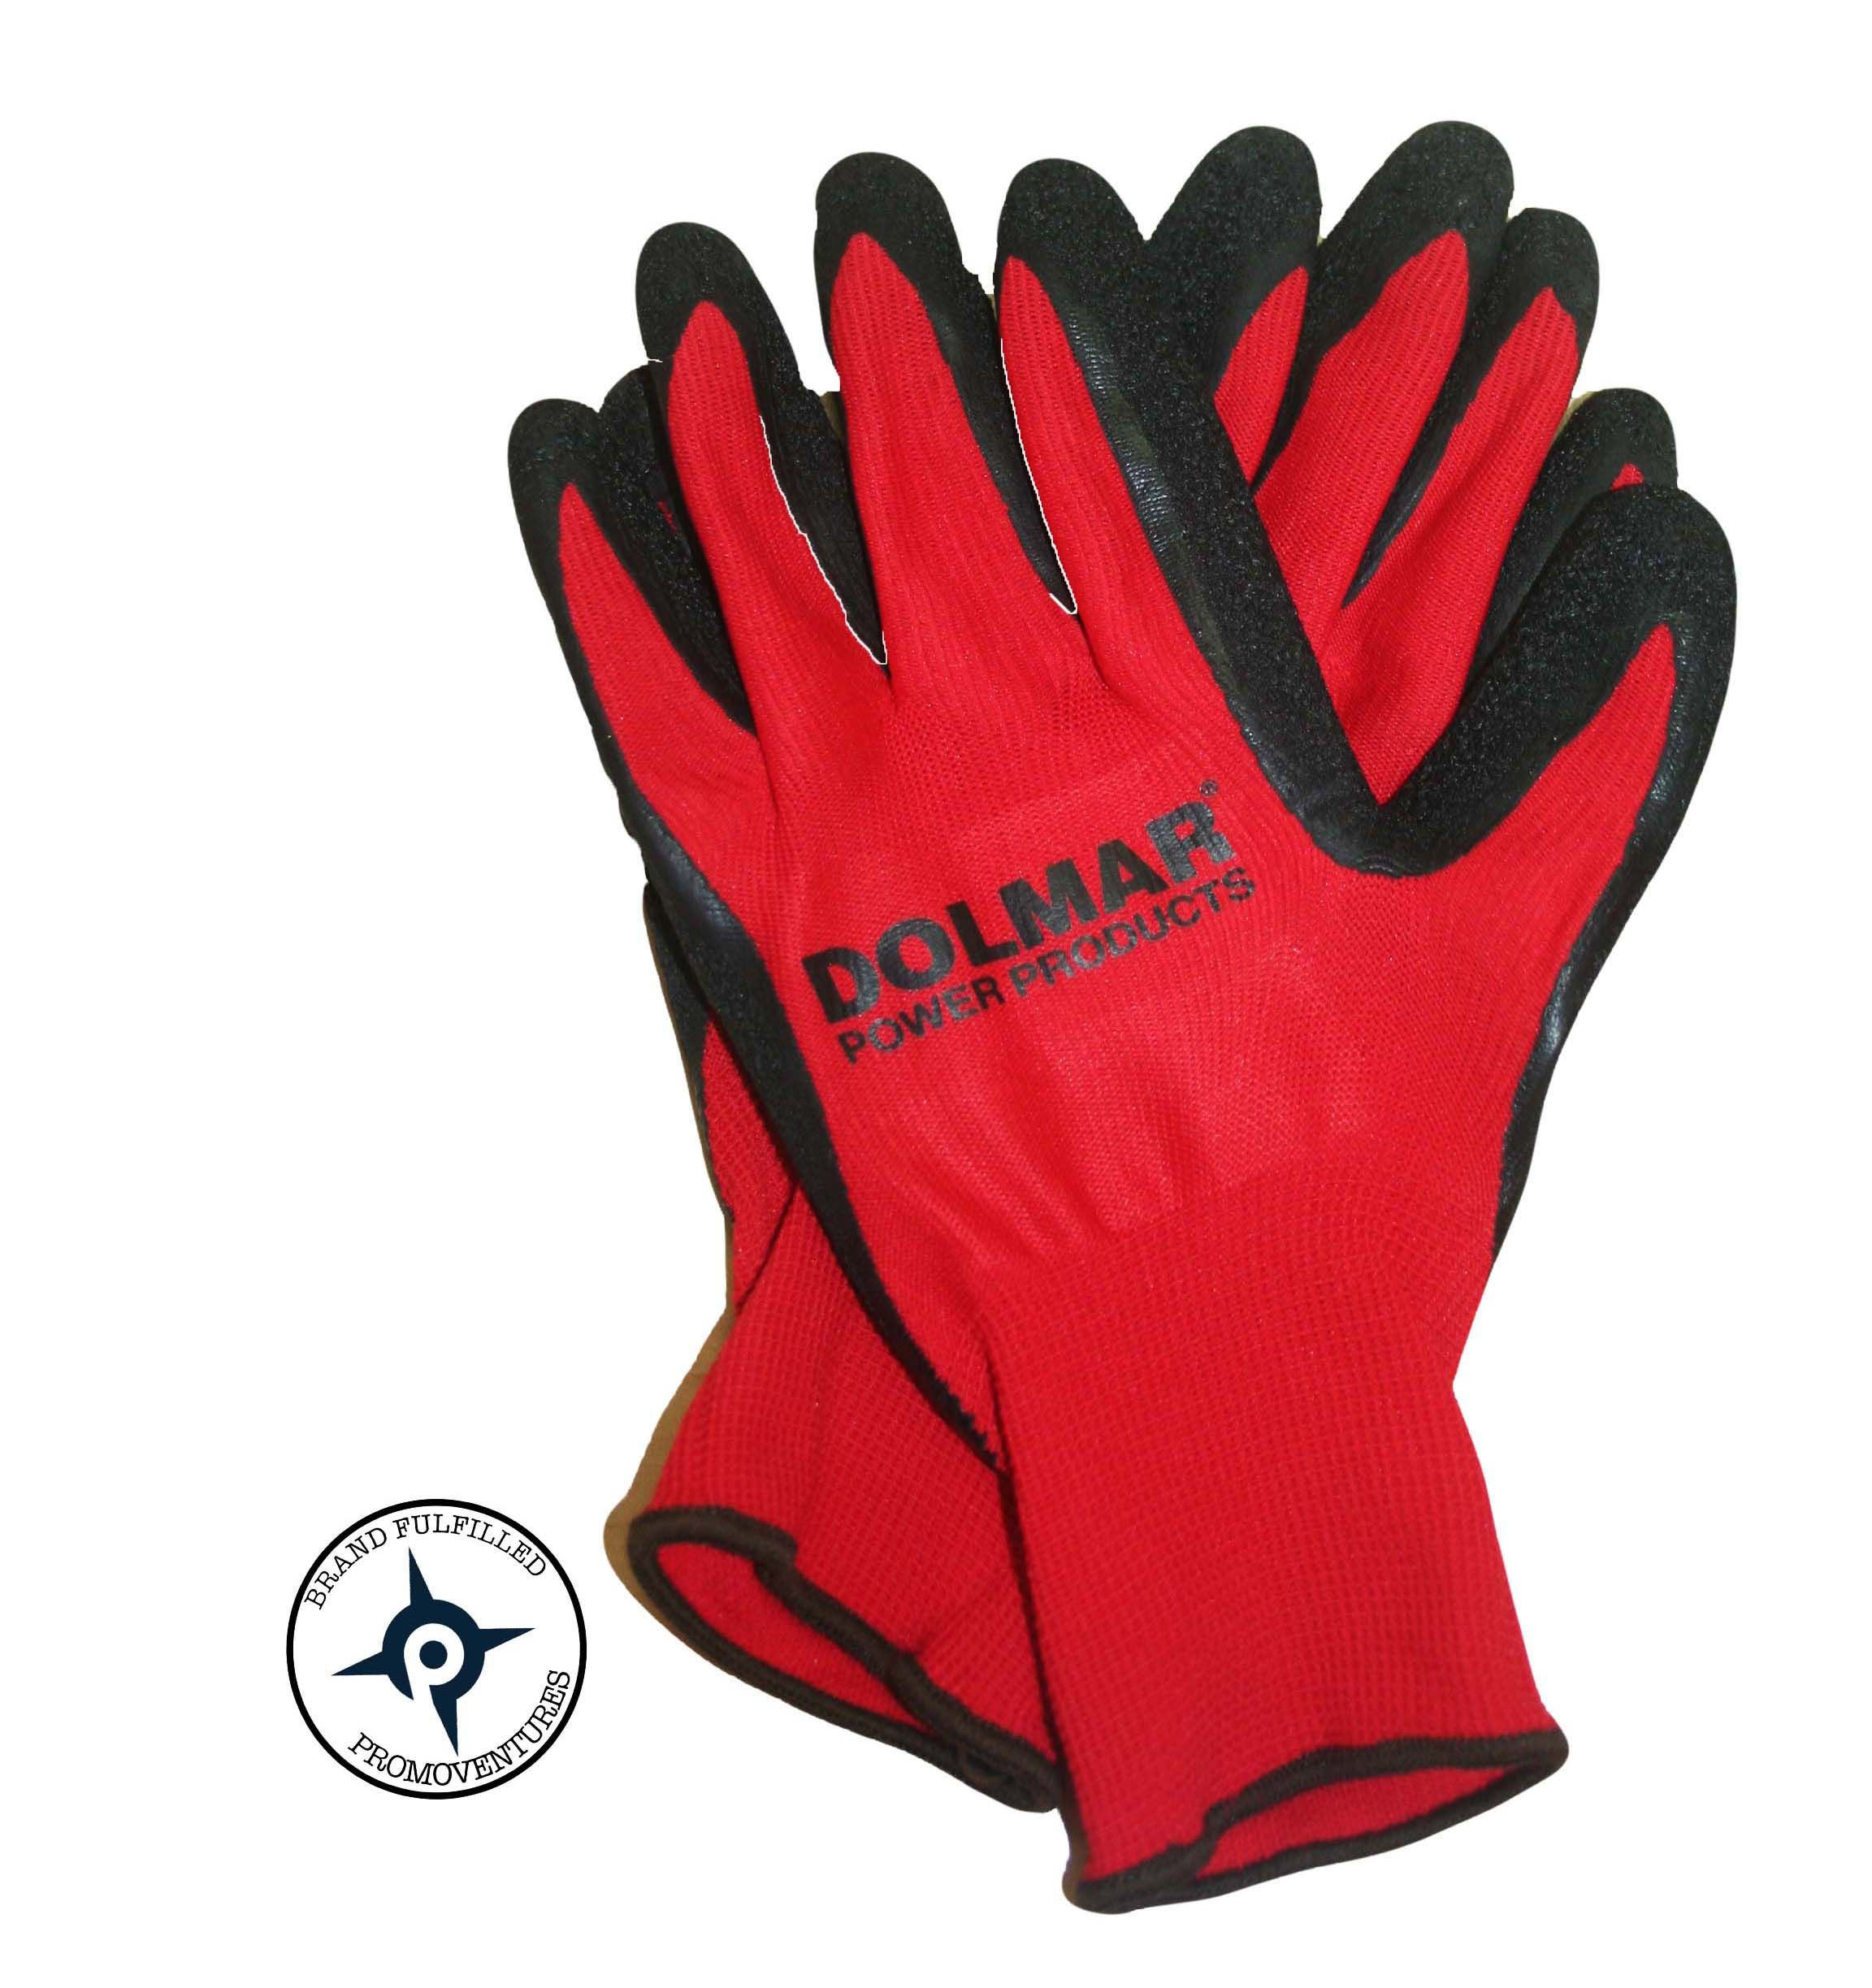 #Promoventures #custom #embroidered gloves used as a #giveaway for #Dolmar  demo